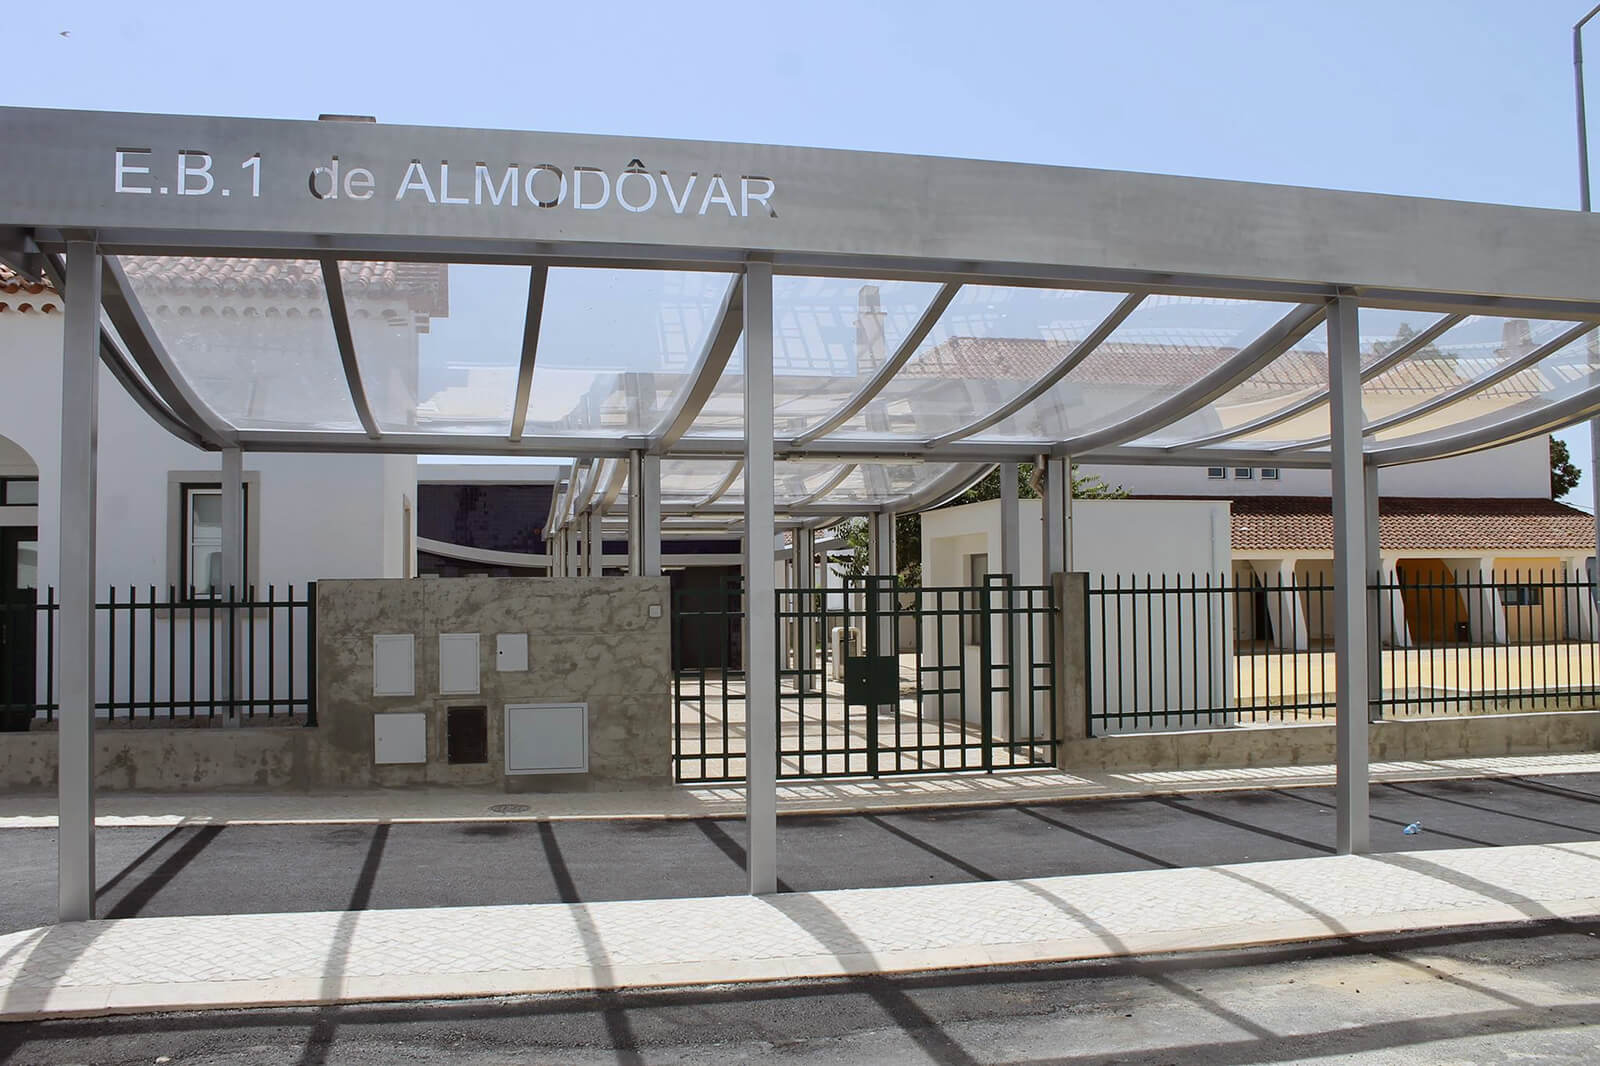 Requalificação do recinto da EB1 De Almodôvar